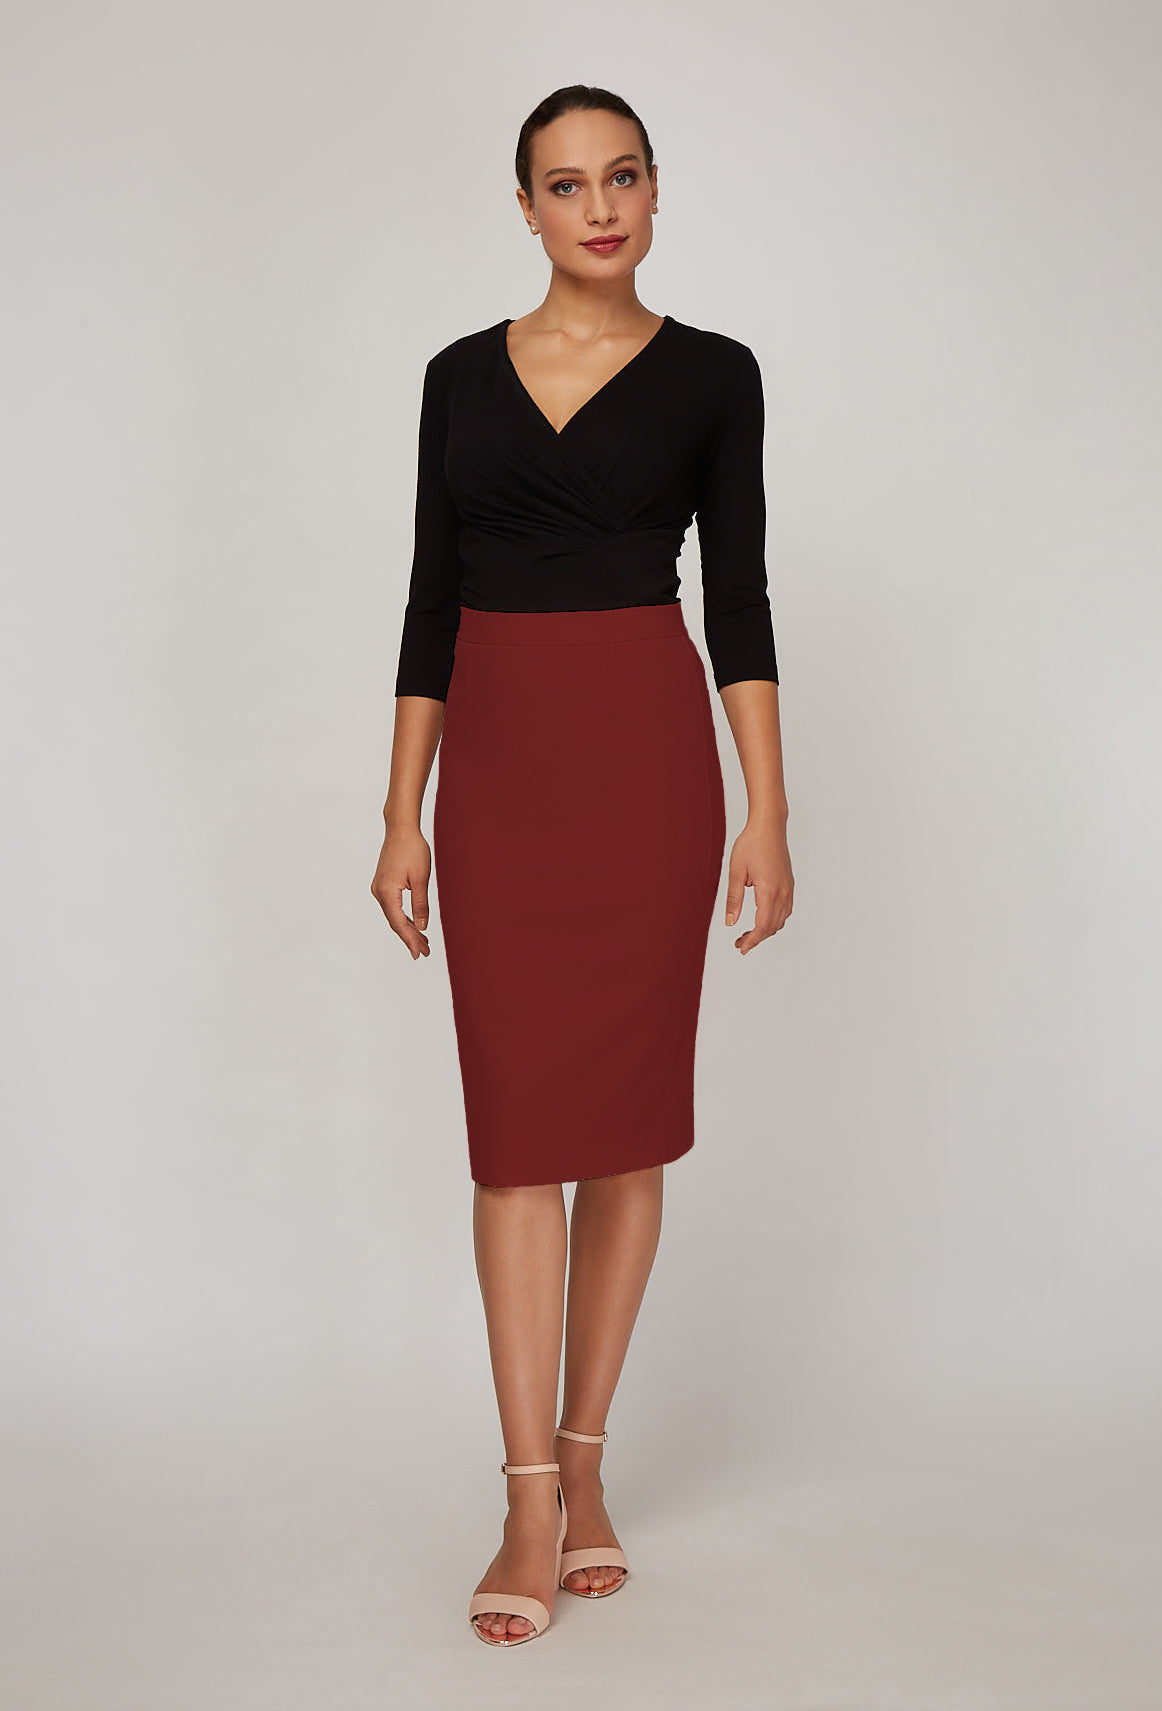 Women's Rita Skirt in Fire Brick | Nora Gardner Front